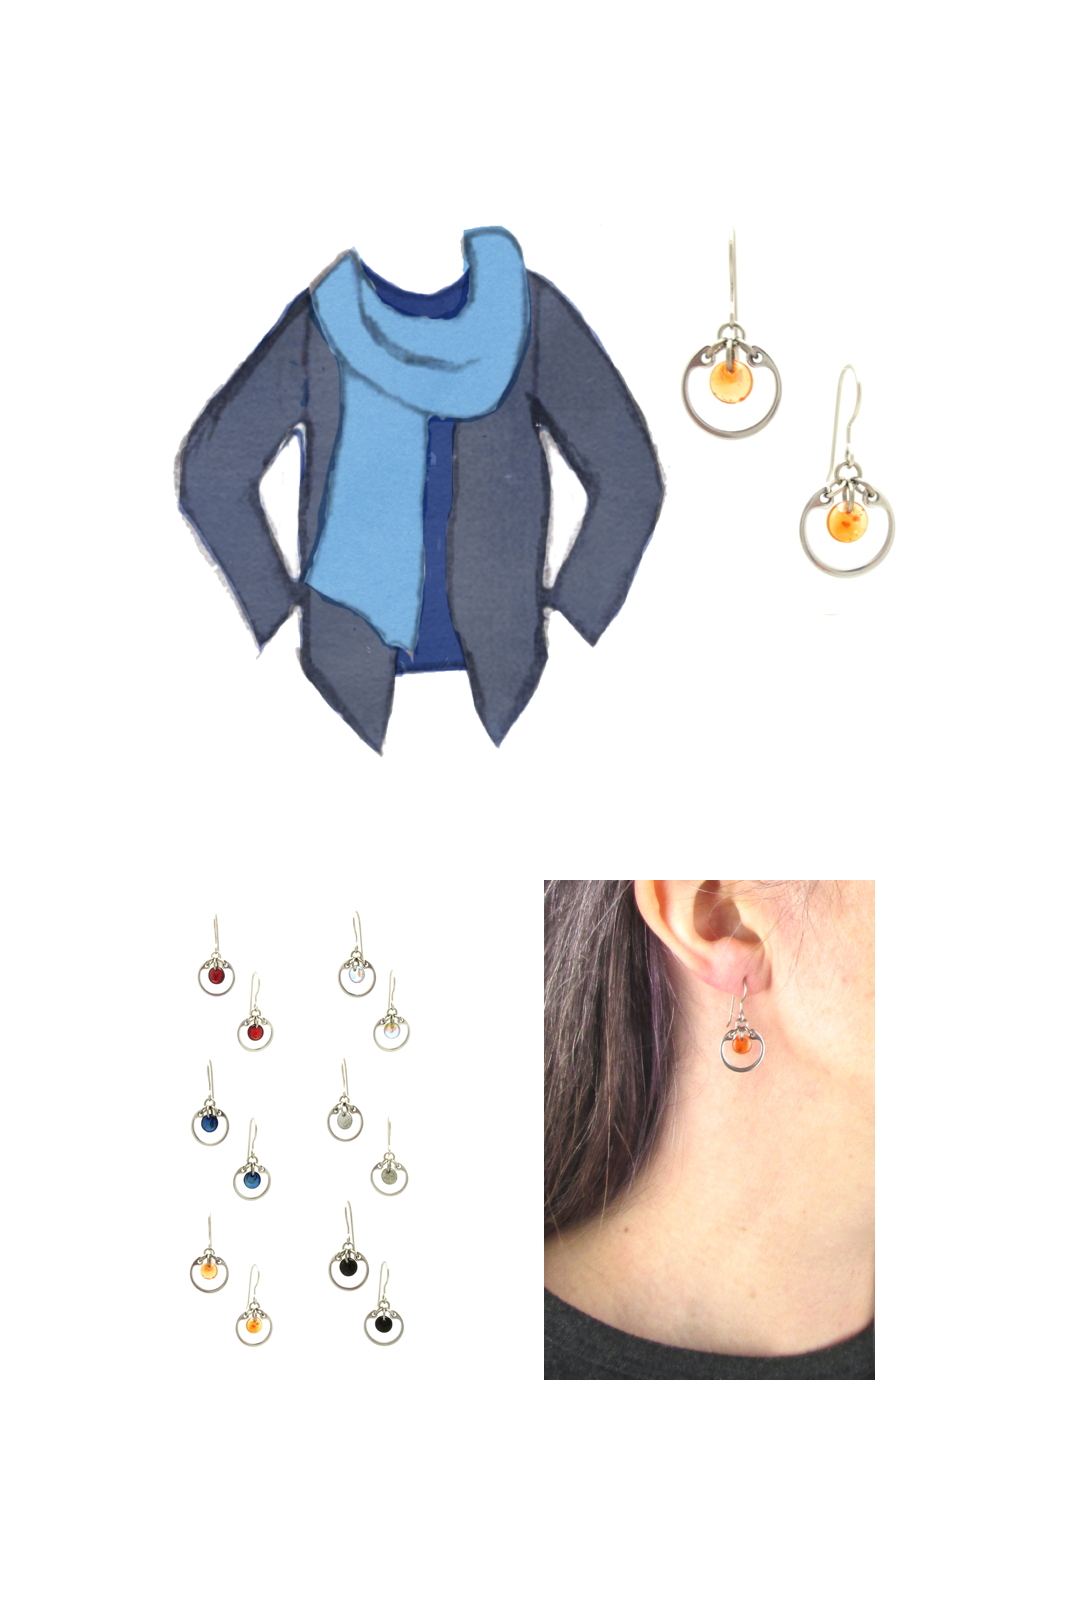 Compiled image with a style sketch of an outfit idea in shades of blue, with a dark blue tee, light blue scarf, & dusty indigo cardigan, with Wraptillion's small modern circle earrings in orange, Compiled image with a style sketch of an outfit idea in shades of blue, with a pale blue tee, violet blue scarf, & dusty indigo cardigan, a closeup modeled photo of the same earrings, and additional color choices for the small circle earrings.